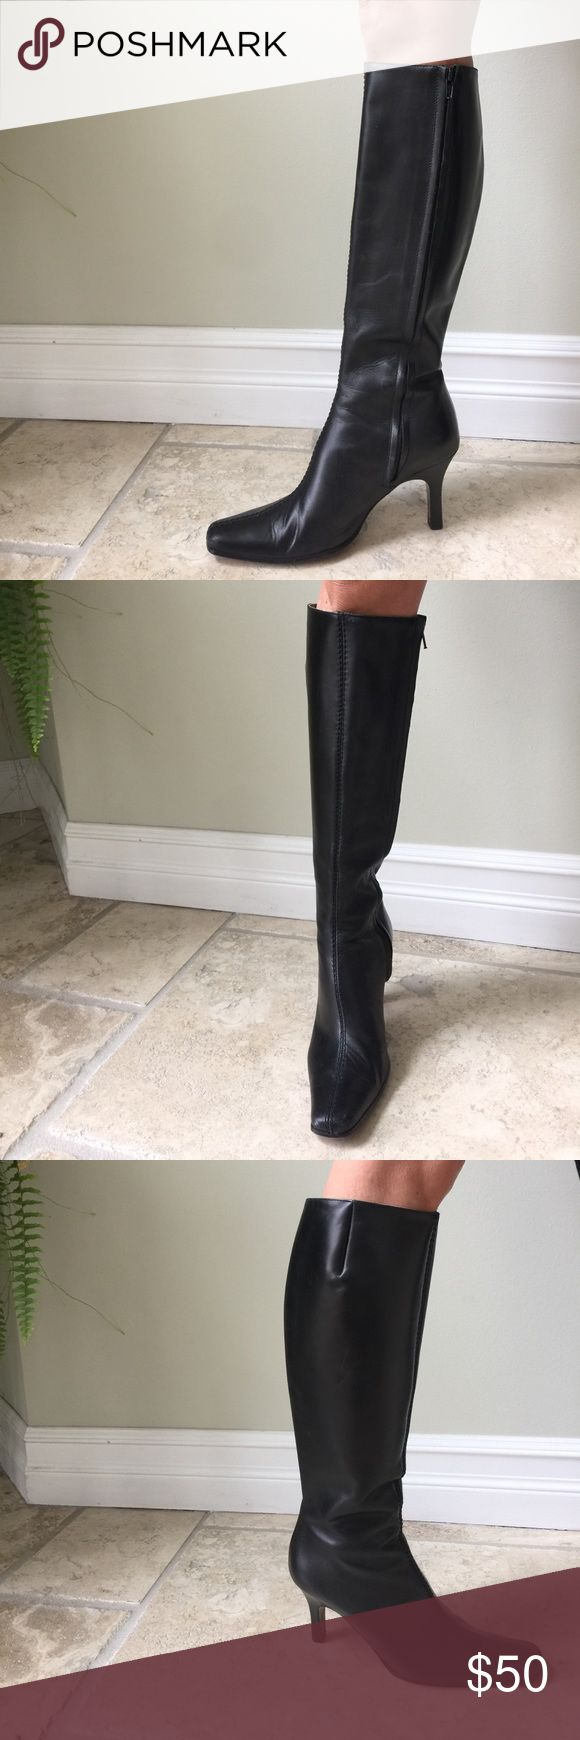 J Crew Leather Knee-high Boots with Heel Genuine leather J. Crew boots. Knee high. Size 7. Full inside zipper. Great condition. Made in Italy. J. Crew Shoes Heeled Boots